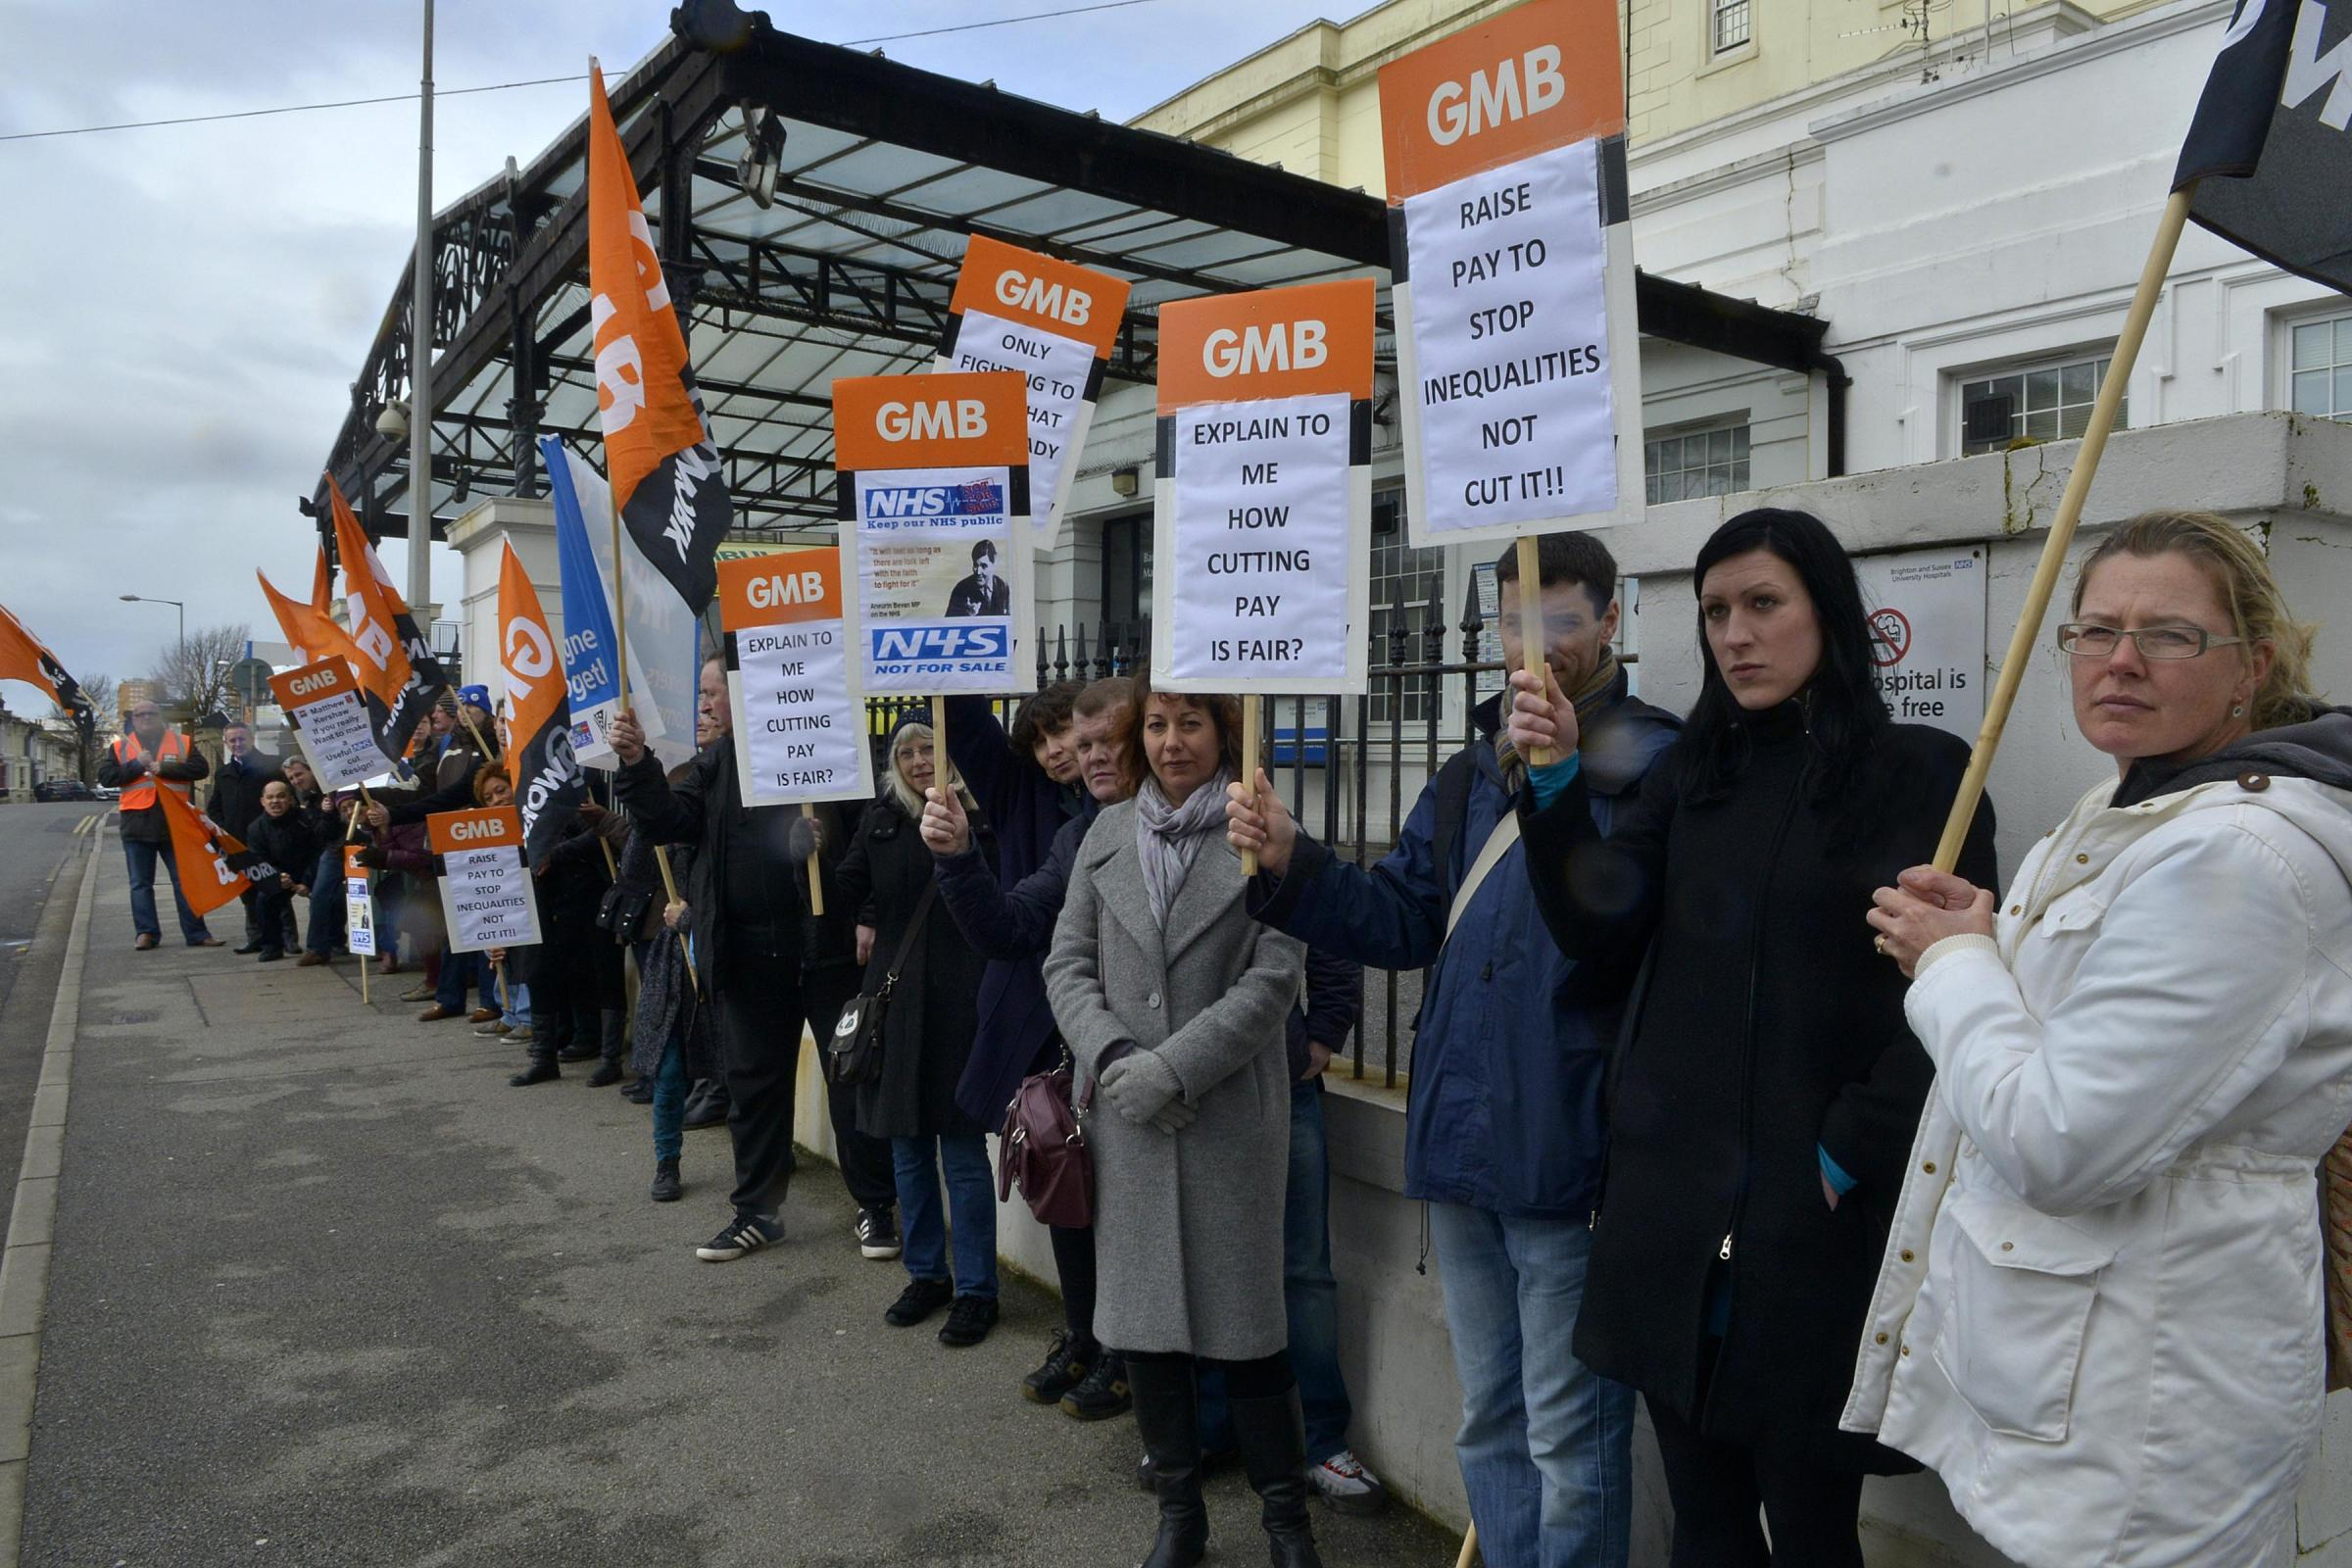 Protesters want action on the widening pay gap at hospital